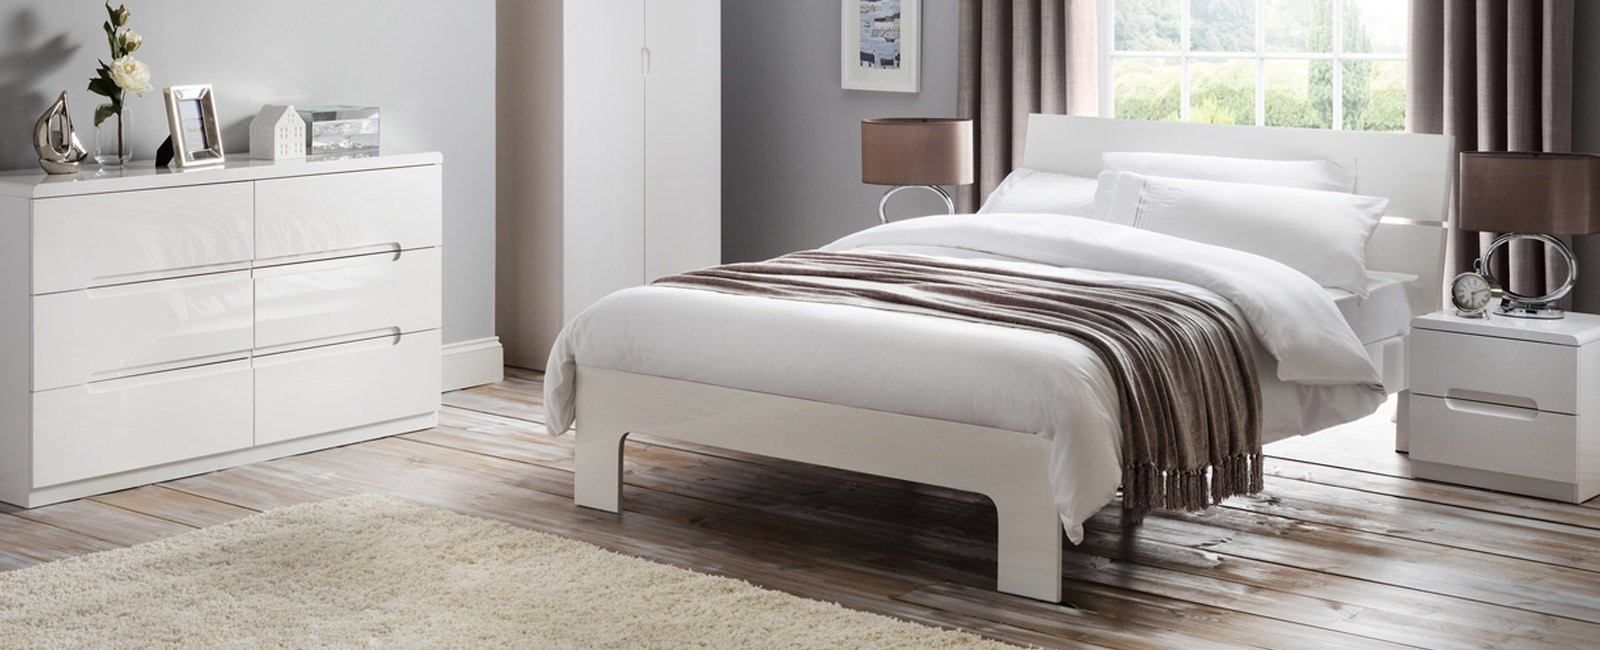 Love our beds & bedroom furniture prices this holiday weekend at Craig's....